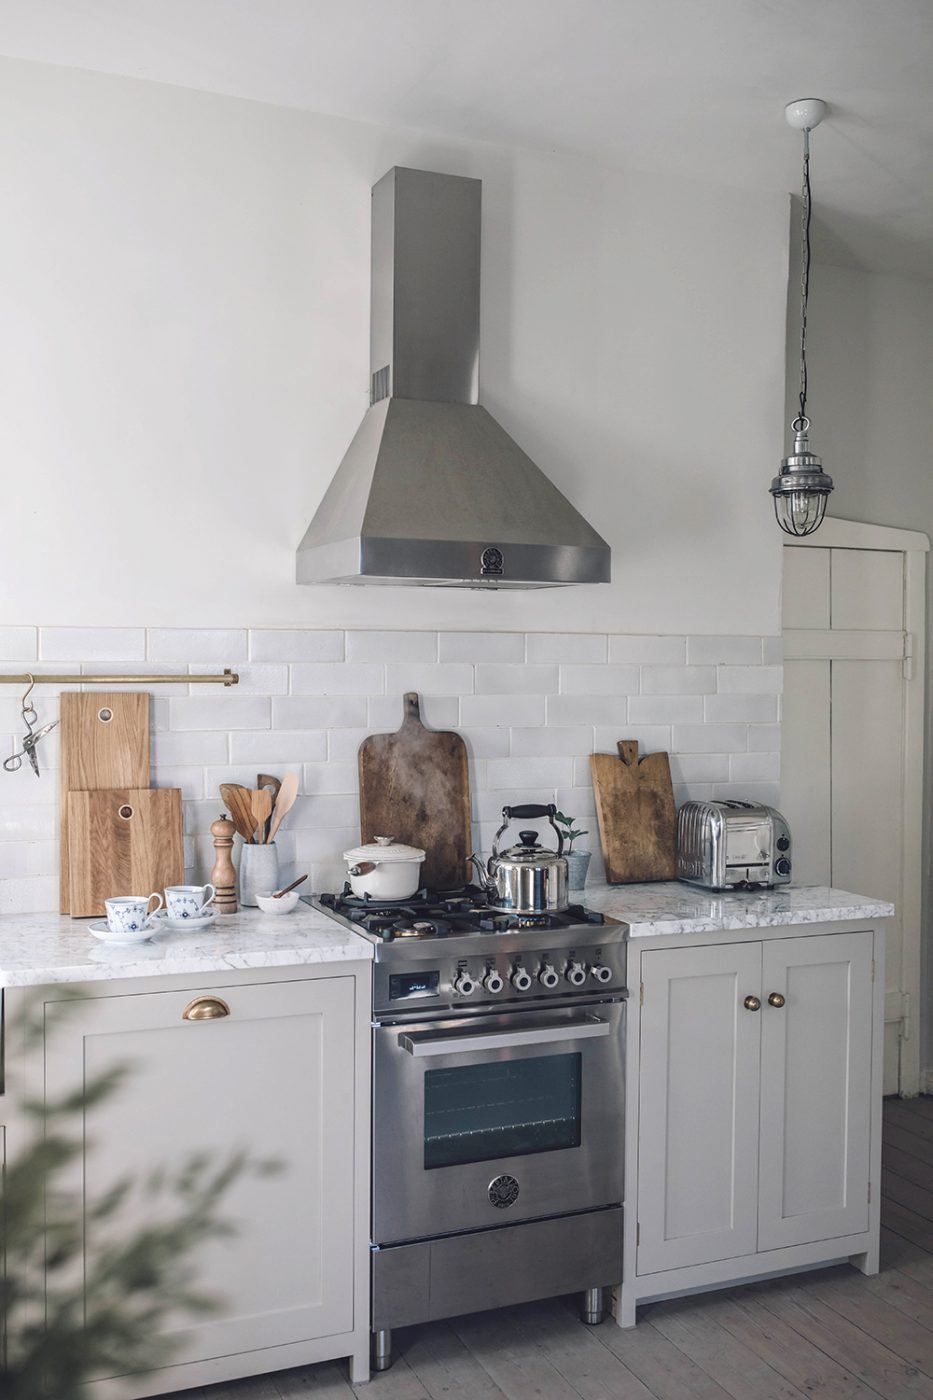 Our New Devol Kitchen In The Countryside Our Food Stories